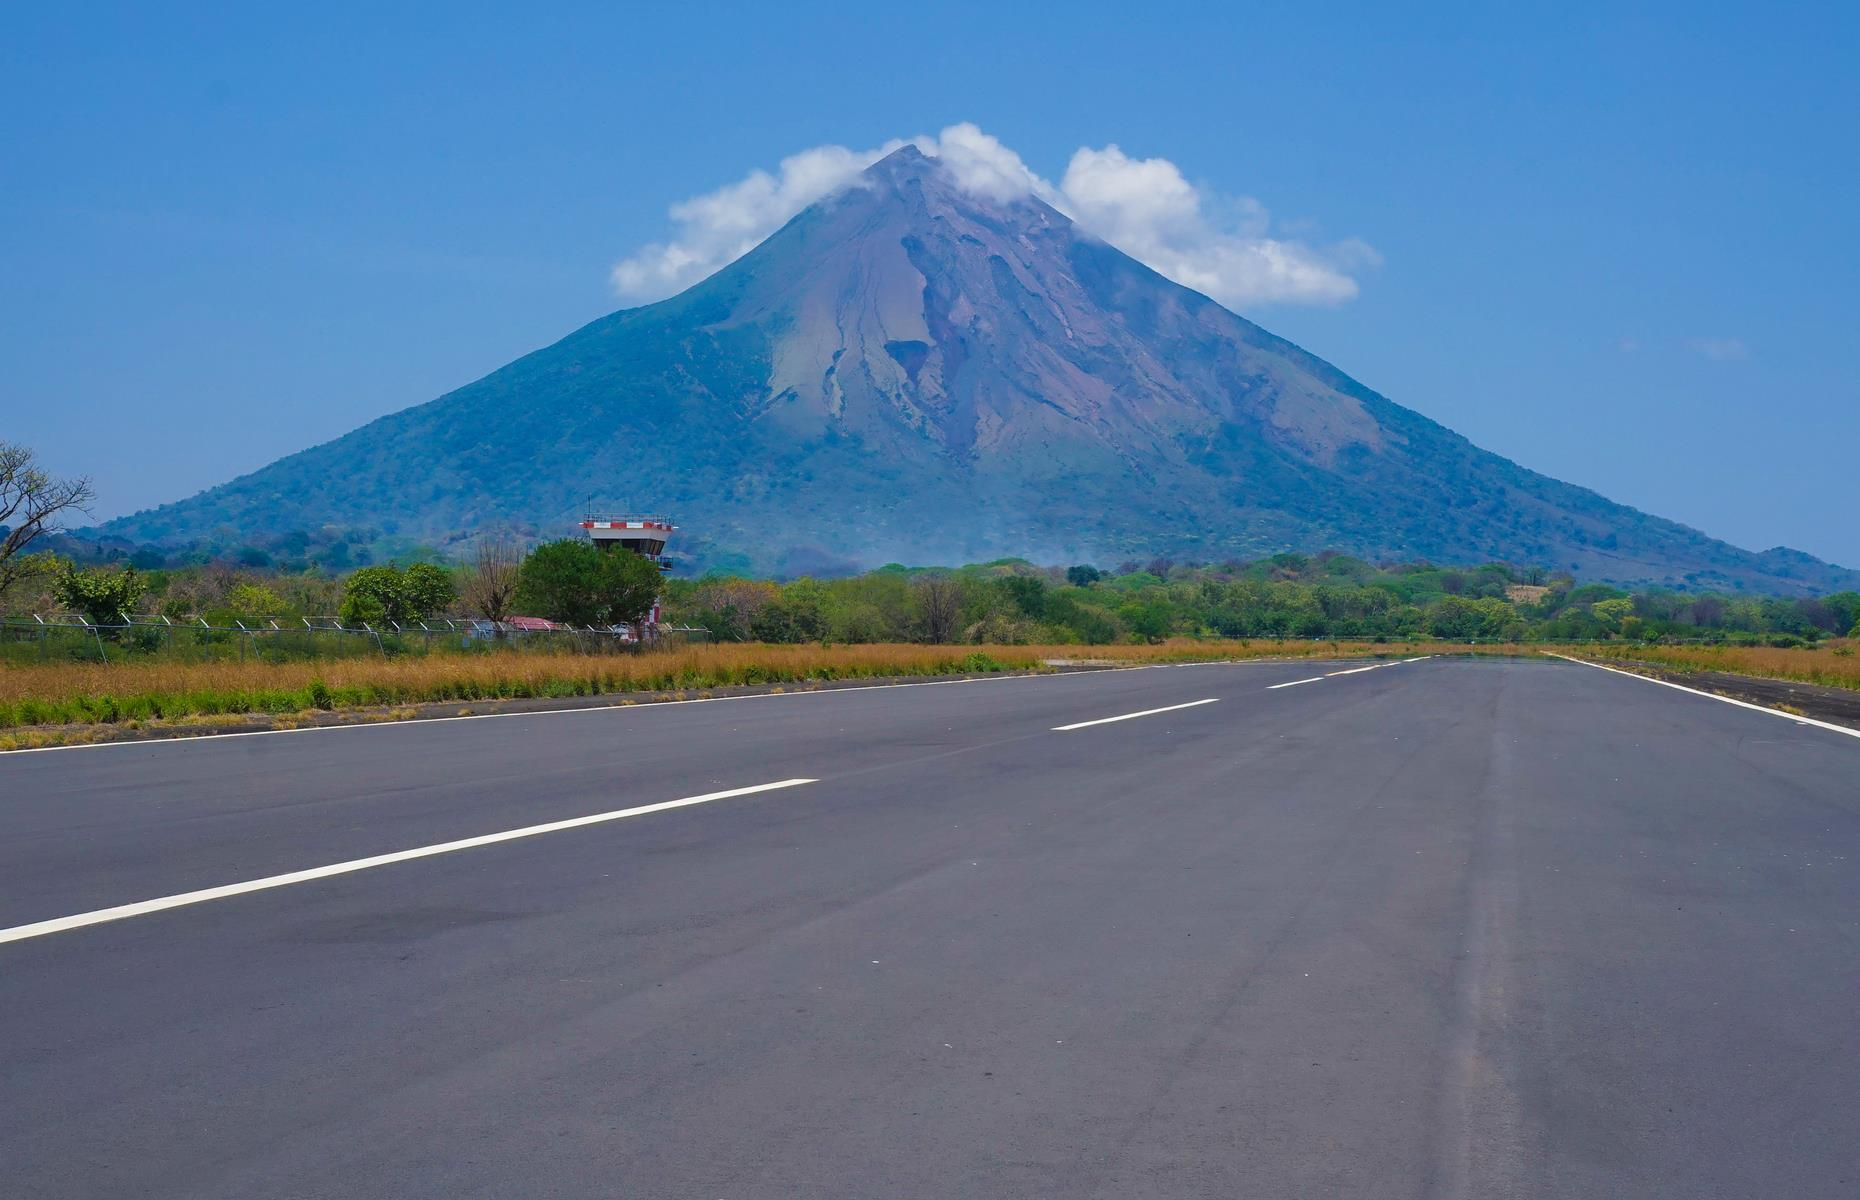 Slide 25 of 36: With the looming cone-shaped Concepcion volcano at the end of its runway, this tiny airport on Ometepe Island in Lake Nicaragua also has a pretty spectacular setting. The airport opened on the island in 2014 and provides a gateway to the gorgeous beaches, walking trails and towering volcanoes.